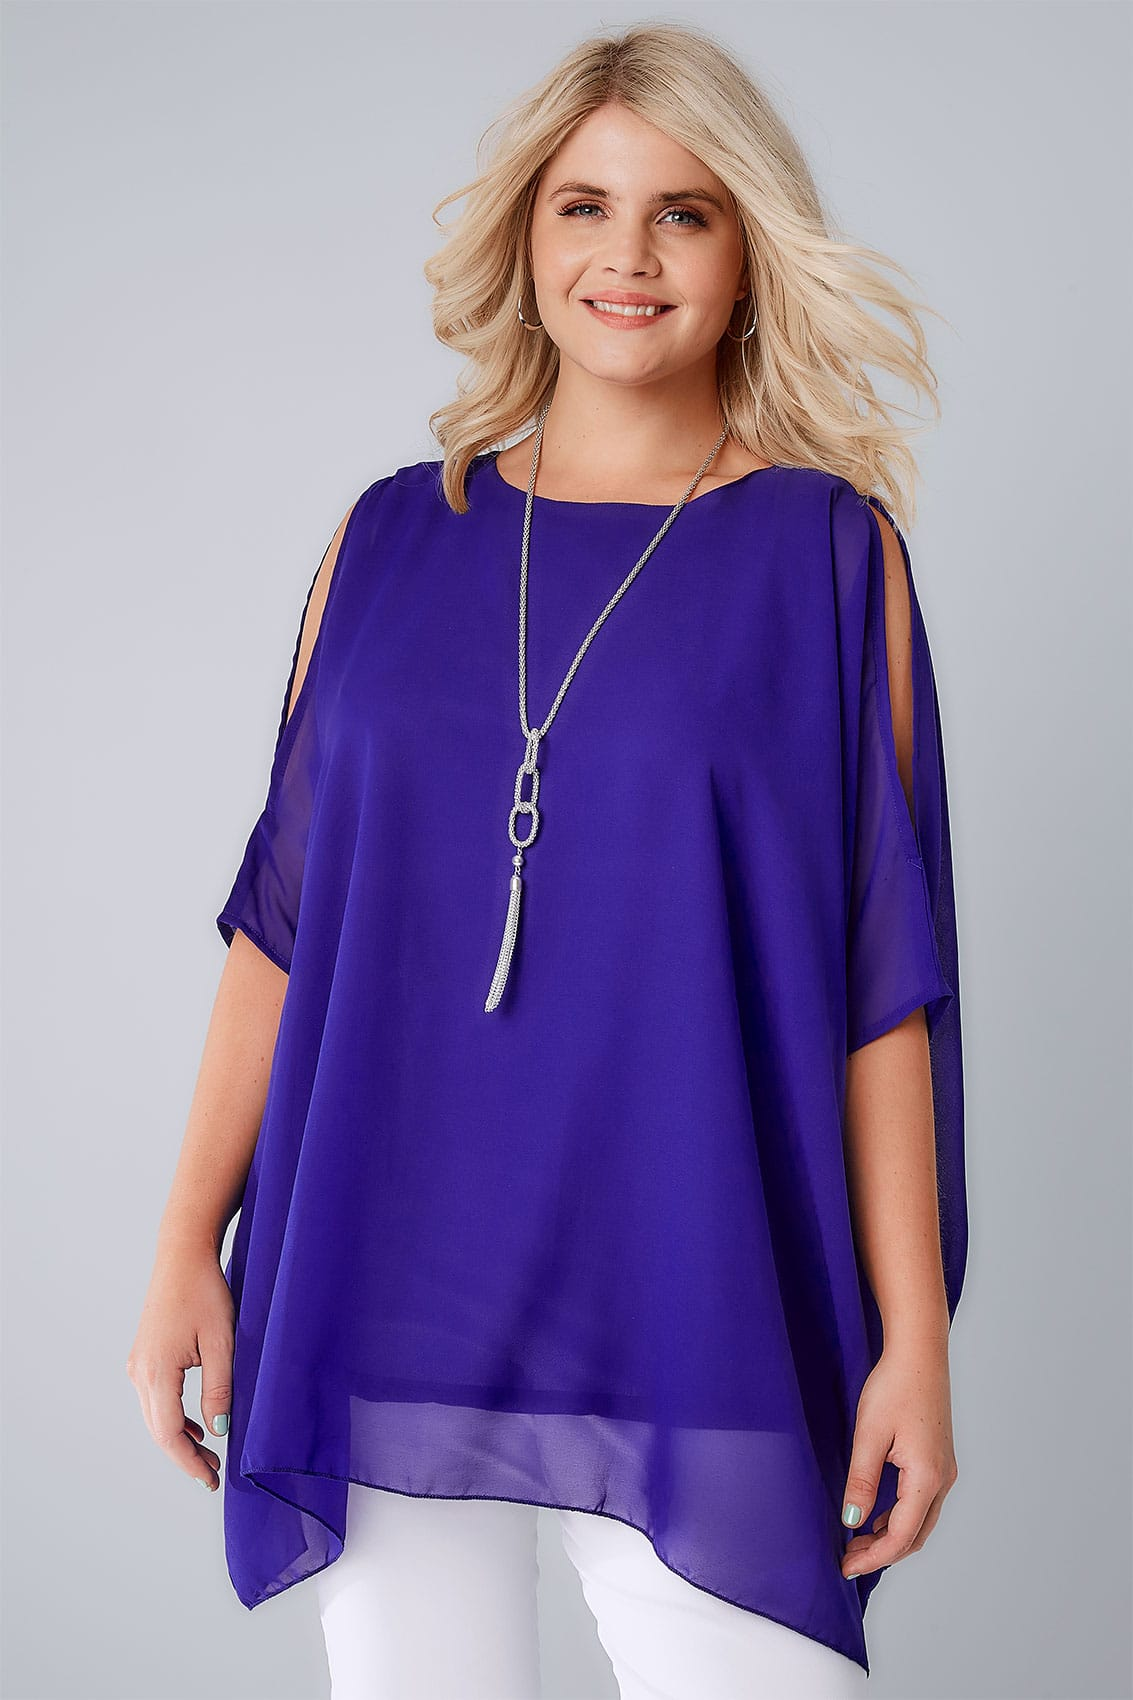 Find great deals on eBay for blue chiffon tops. Shop with confidence.